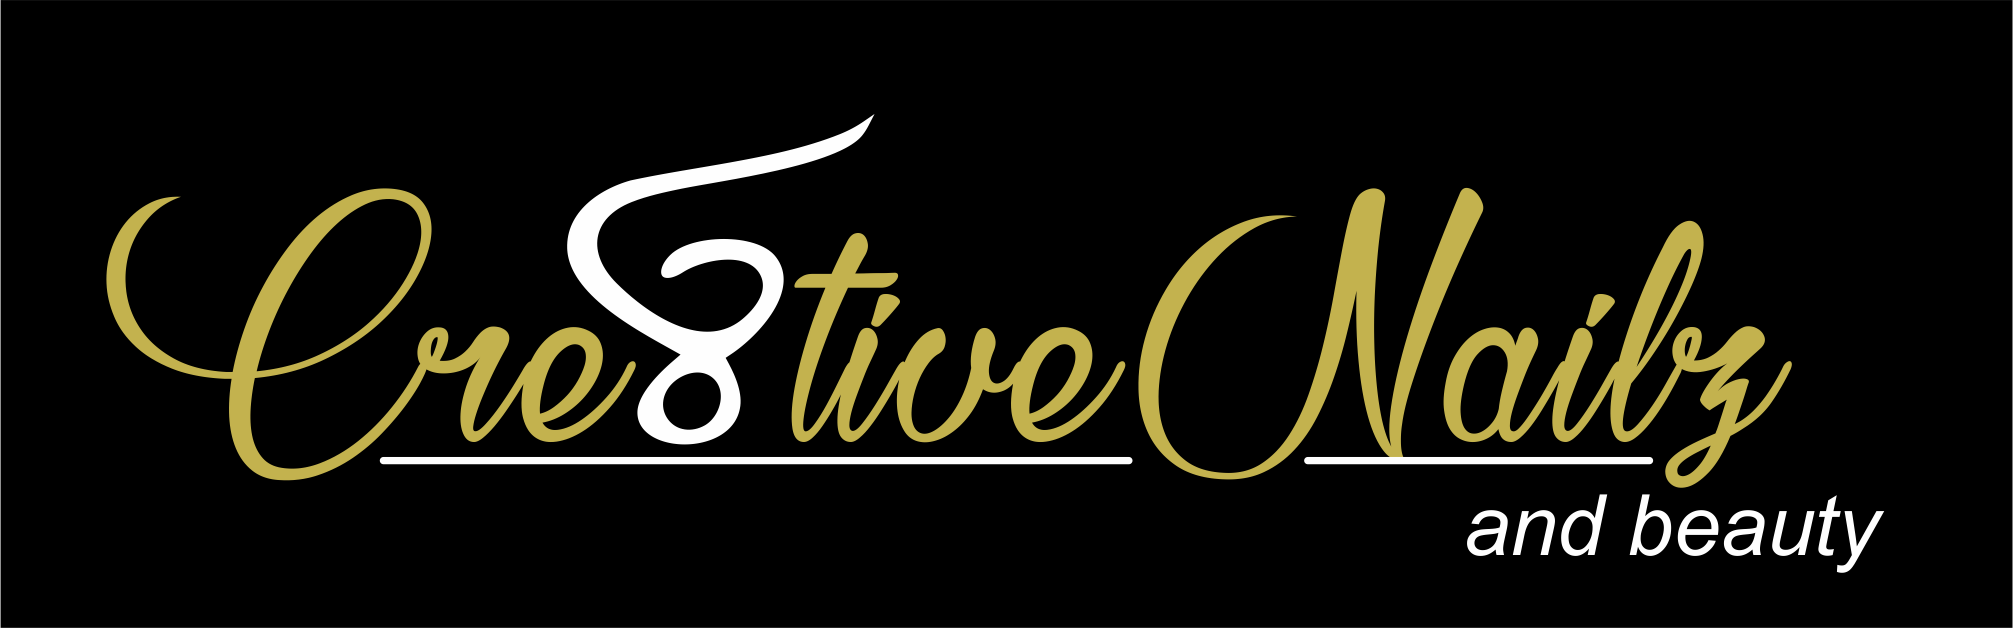 Cre8tive Nailz and Beauty Logo